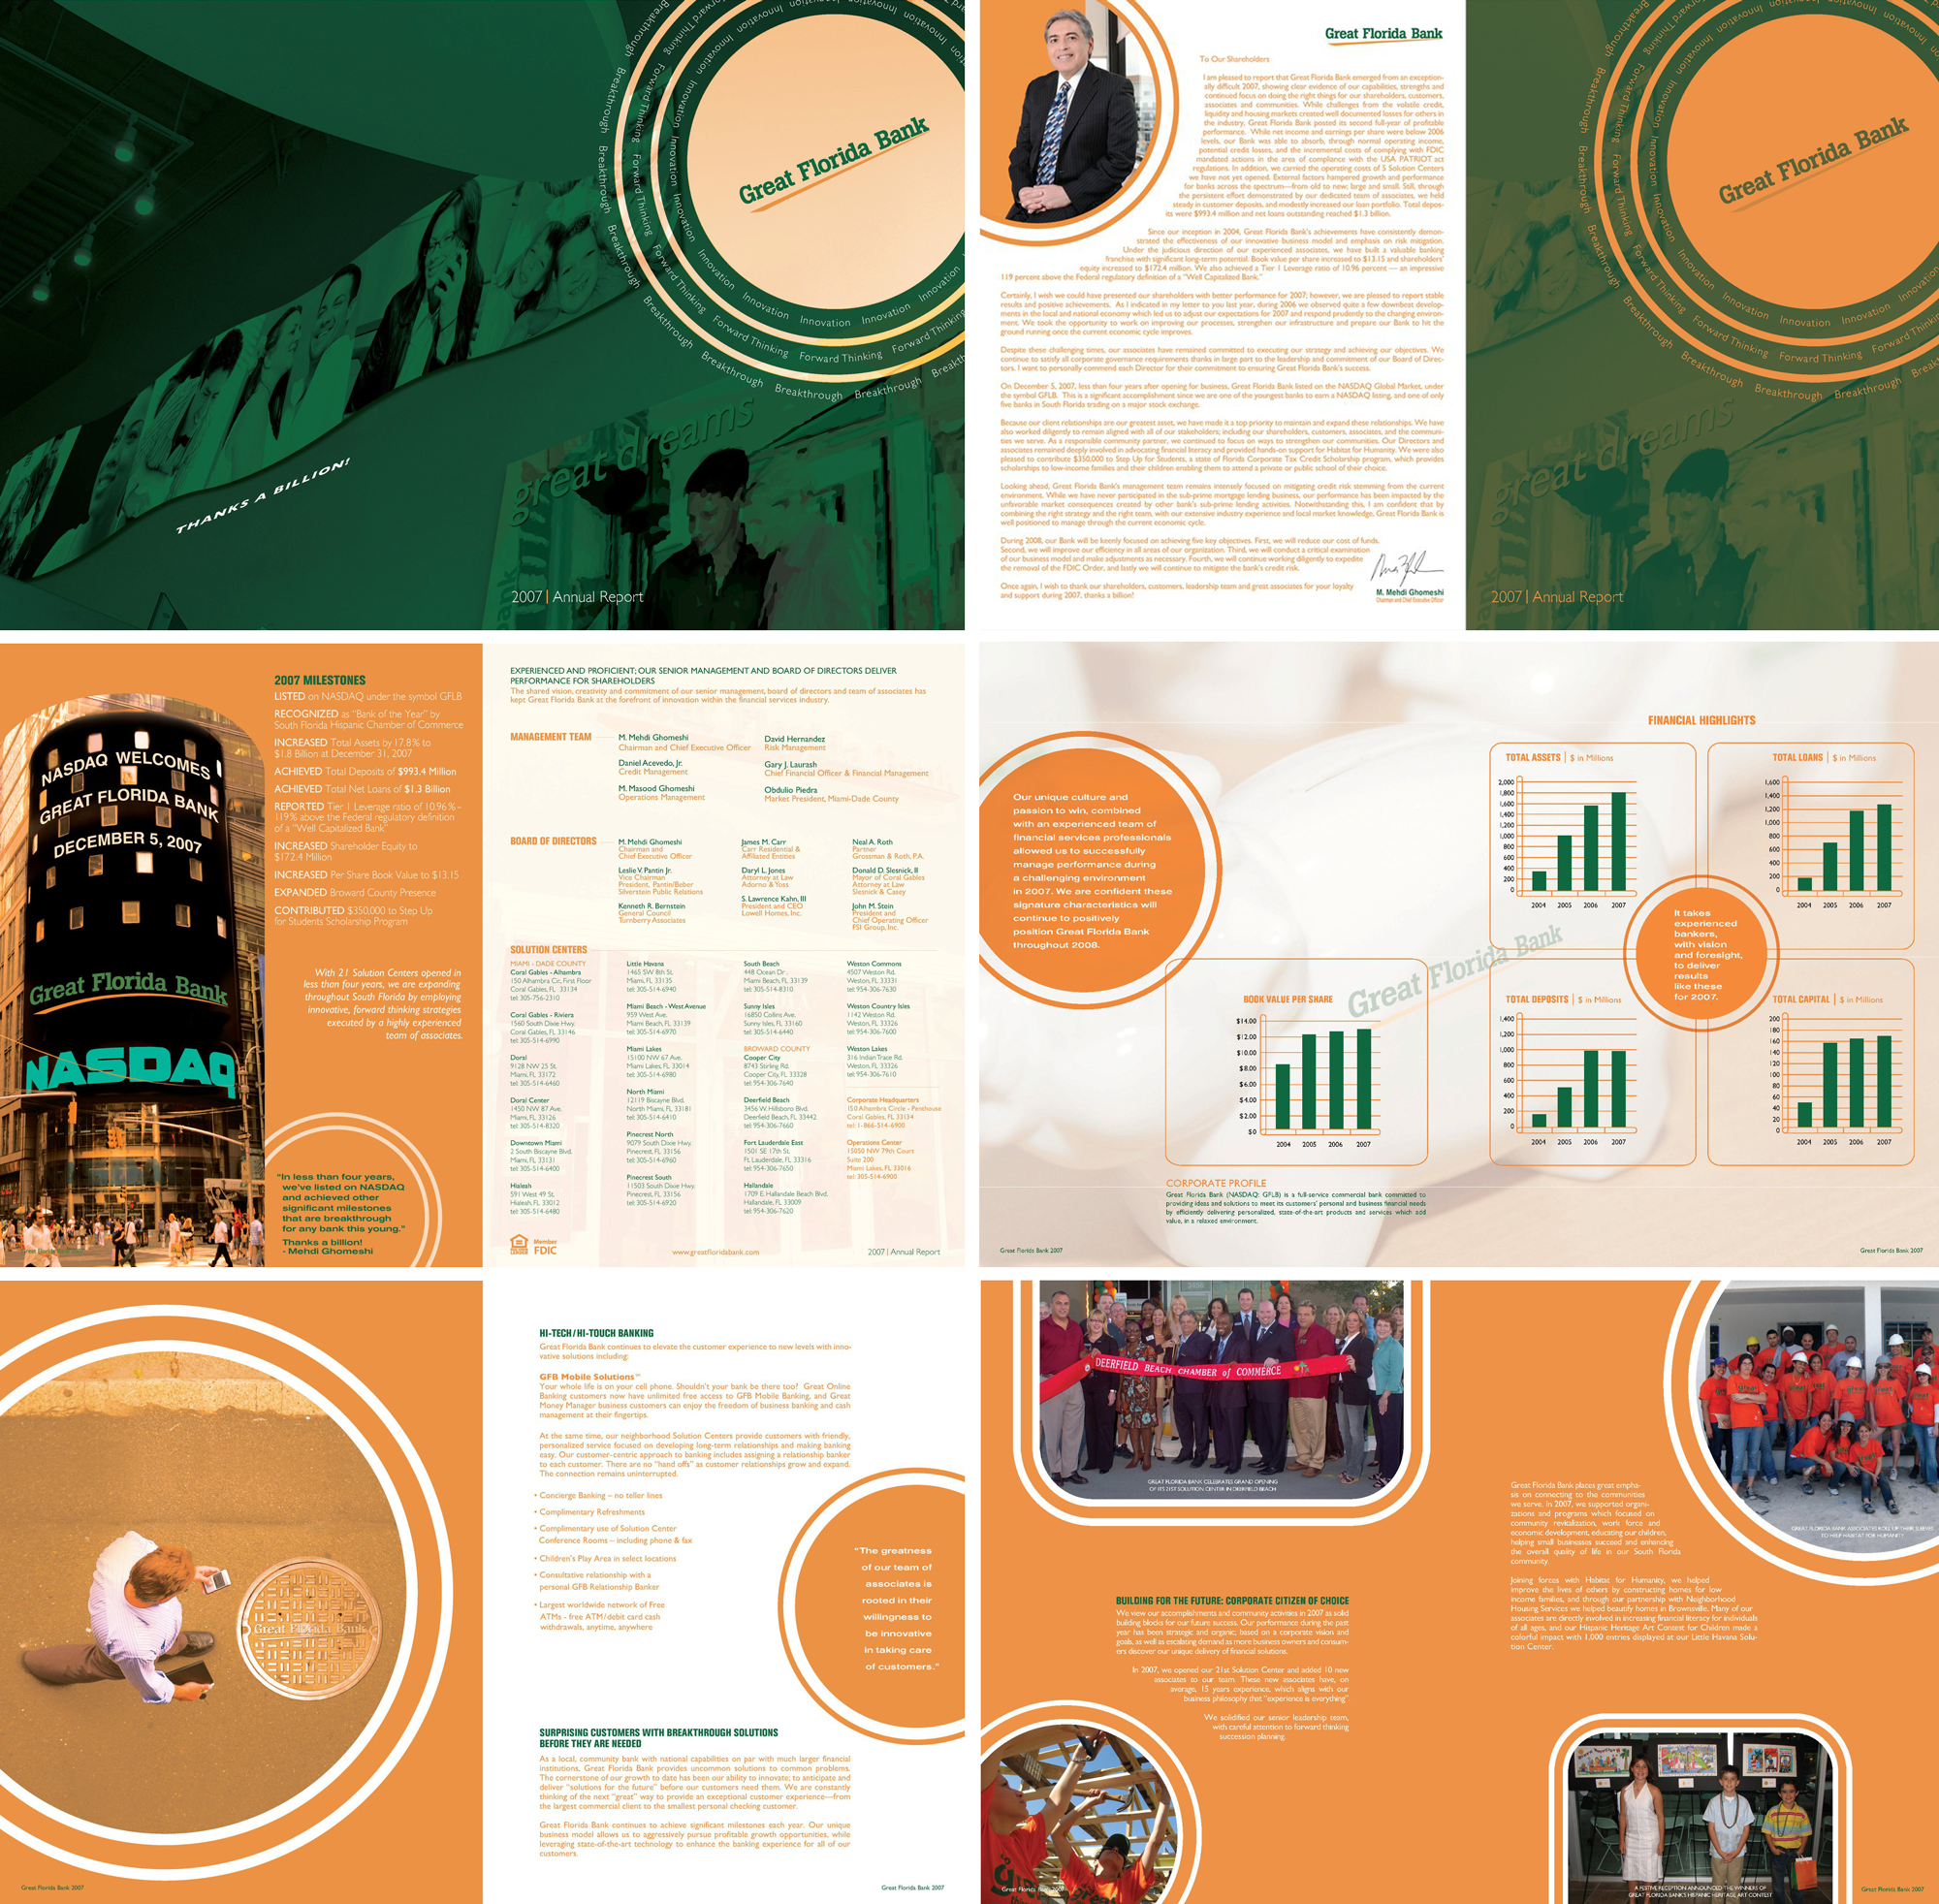 Great Florida Bank Annual Report